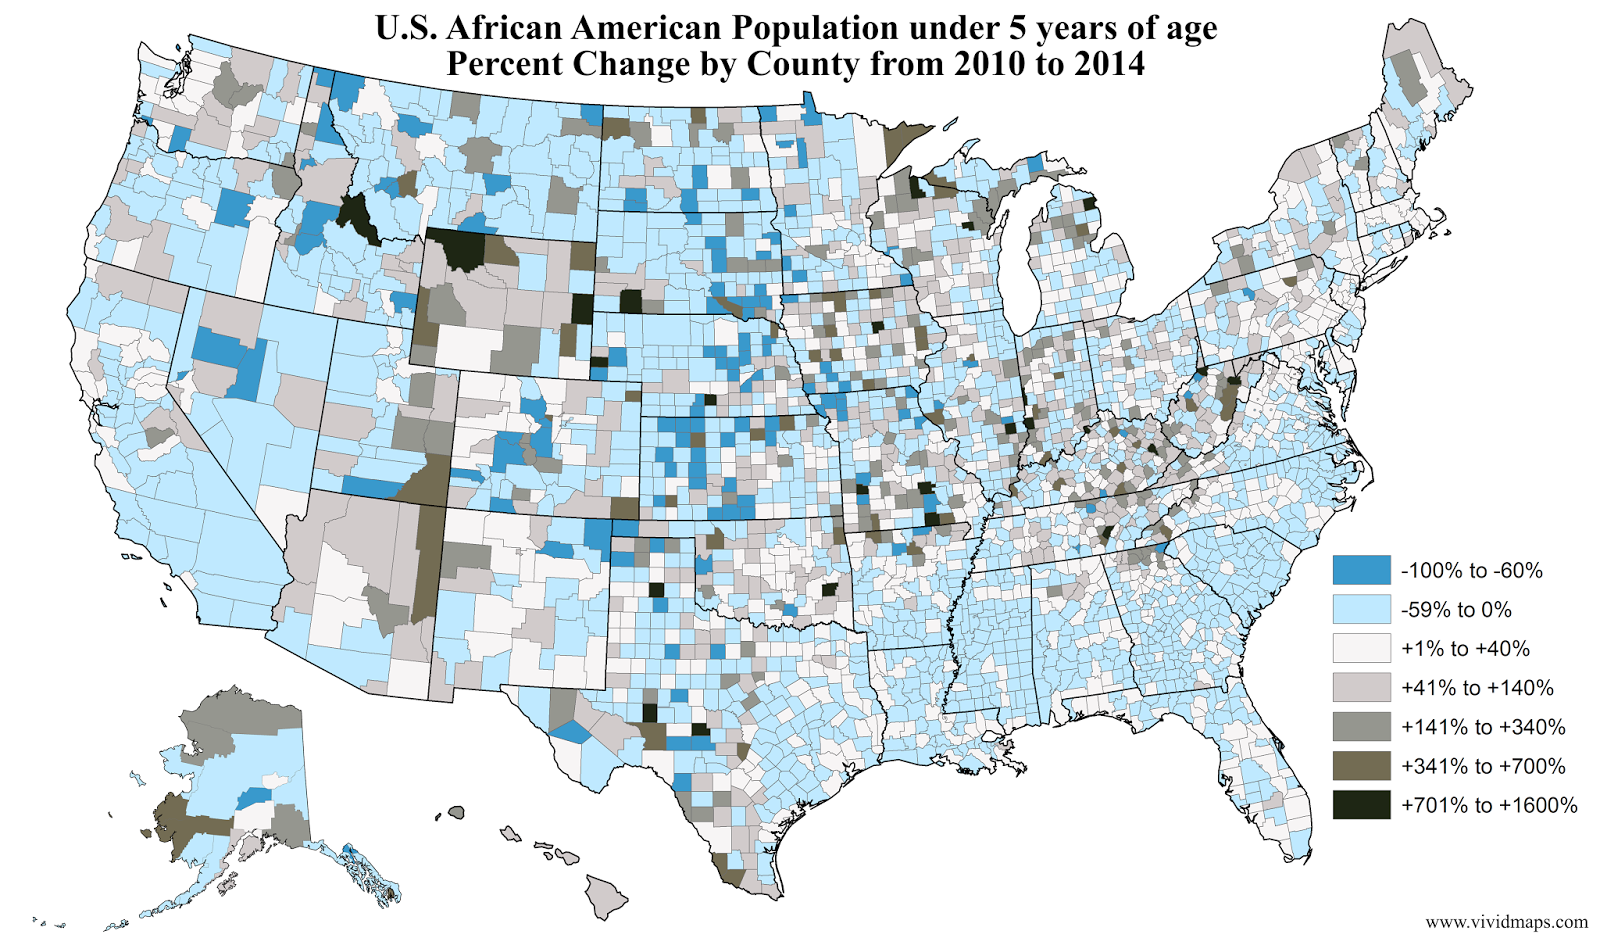 U.S. African American Population under 5 years of age Percent Change by County (2010 - 2014)